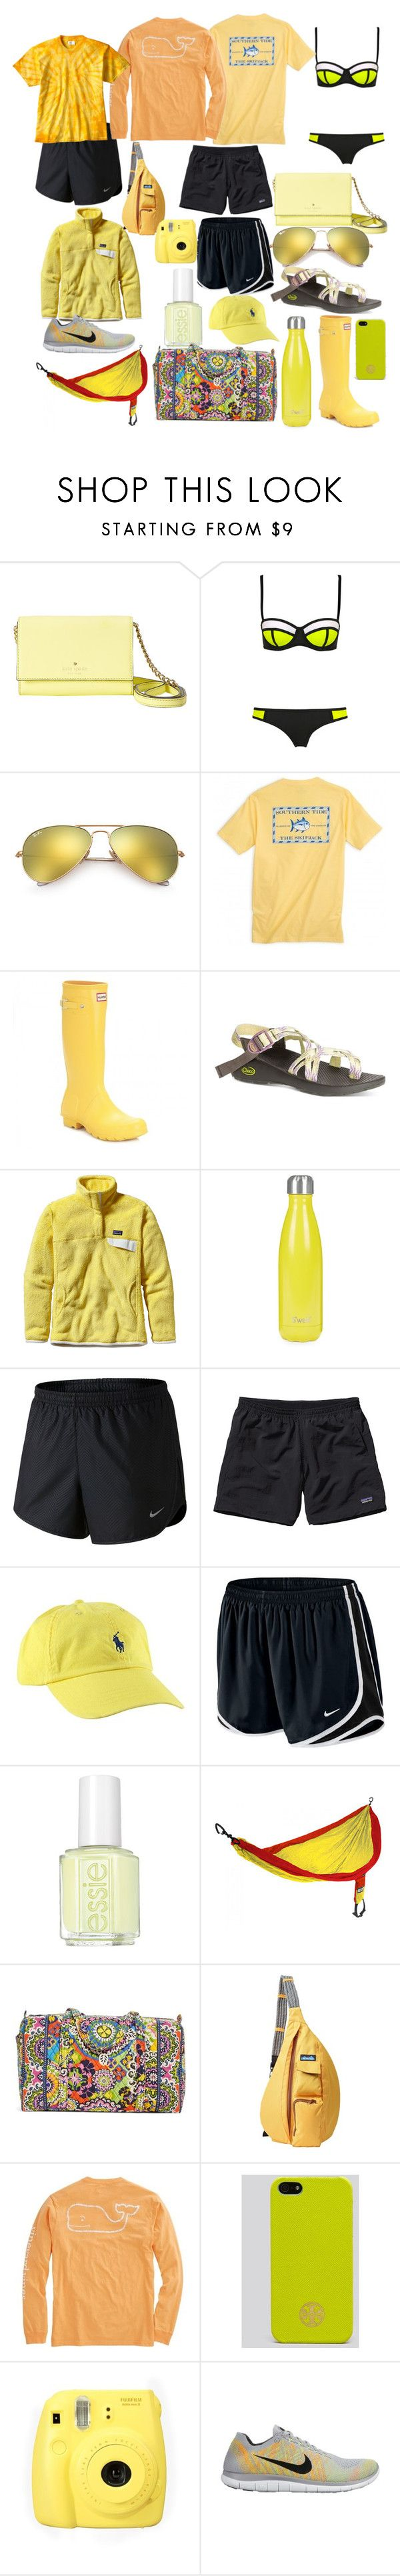 """Idk pt 2"" by dickeyfam on Polyvore featuring Kate Spade, WithChic, Ray-Ban, Hunter, Chaco, Patagonia, S'well, NIKE, Essie and ENO"